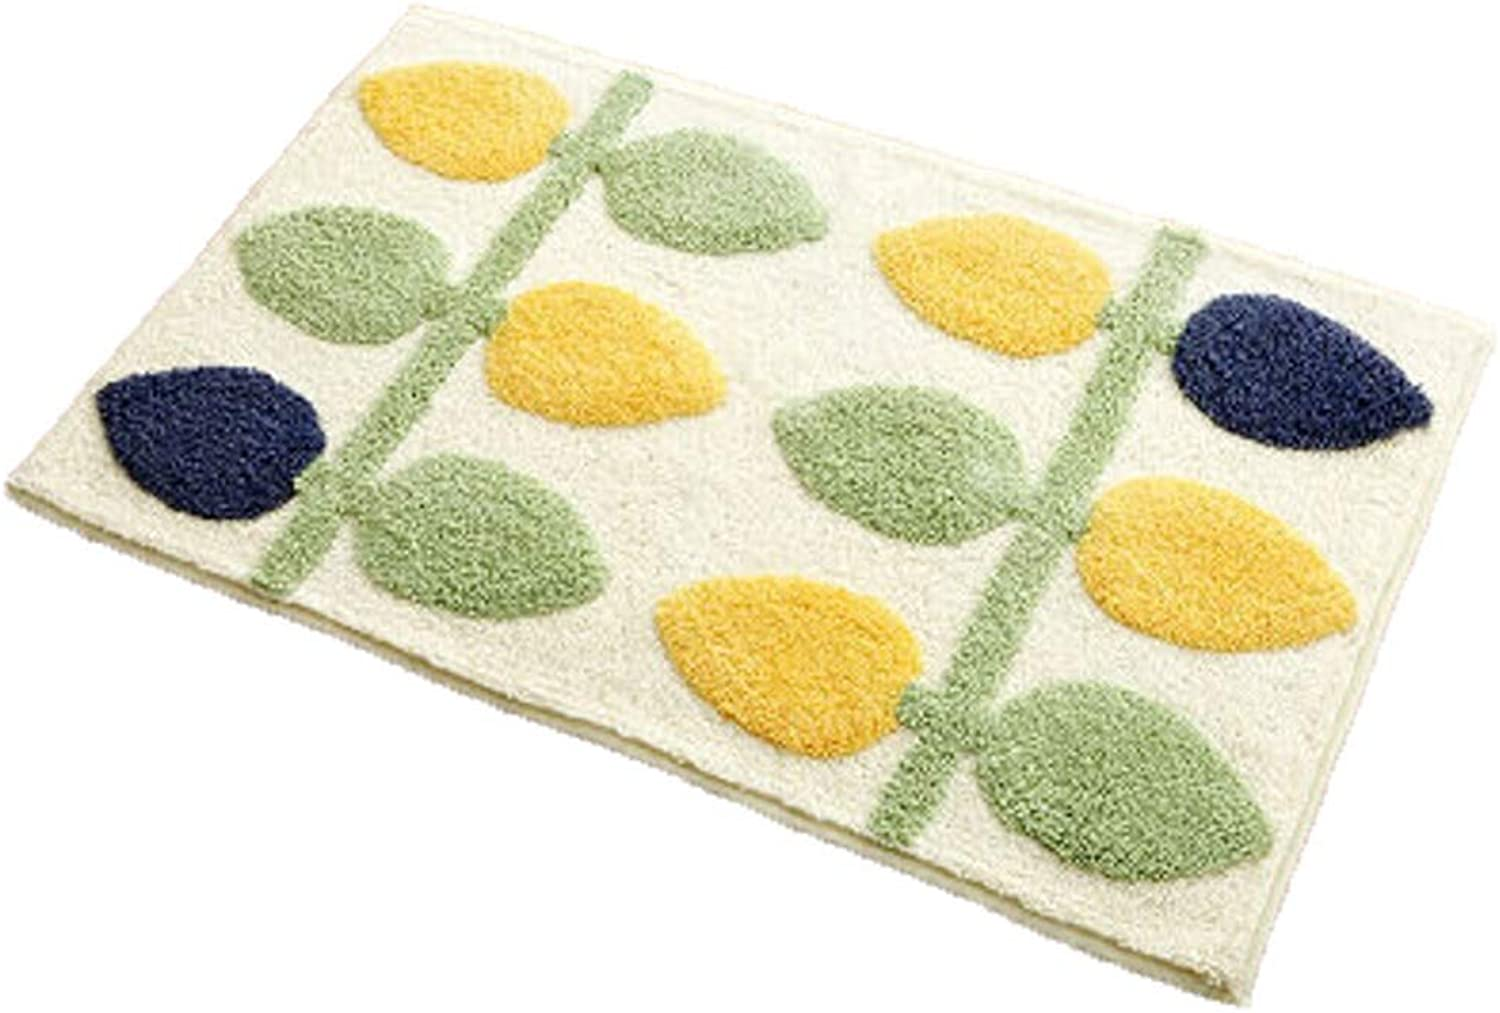 MING REN Floor mat - Fiber Fabric, Dense Fluff, Non-Slip Water Absorption, Good Breathability, Active Printing and Dyeing, Rectangular Household Bathroom Bedroom, Water Absorption Hall Door mat, Foot